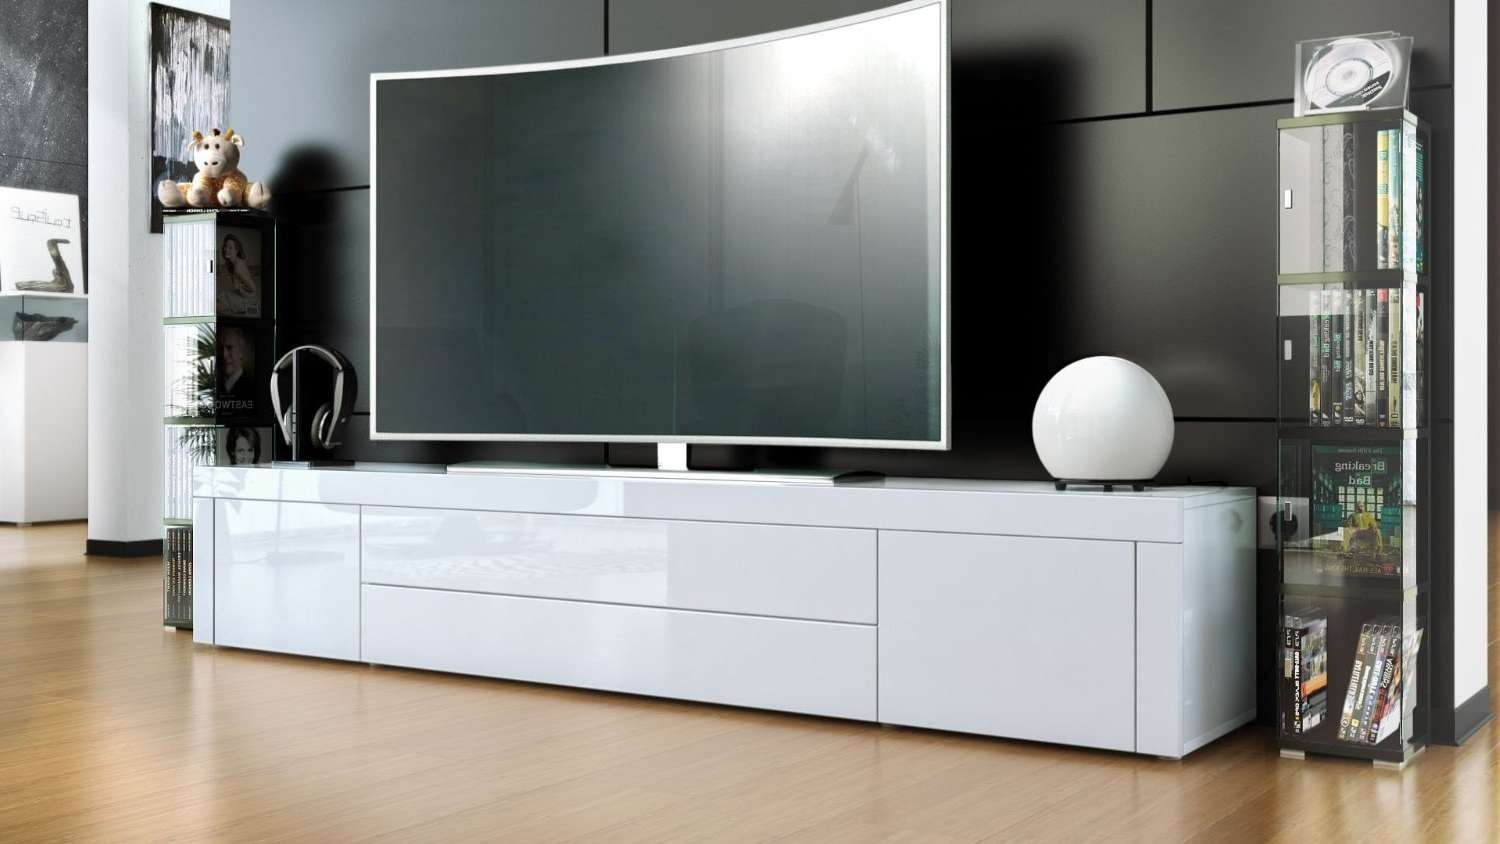 Best Tv Stands White Gloss 49 About Remodel House Interiors With With High Gloss White Tv Stands (View 14 of 15)